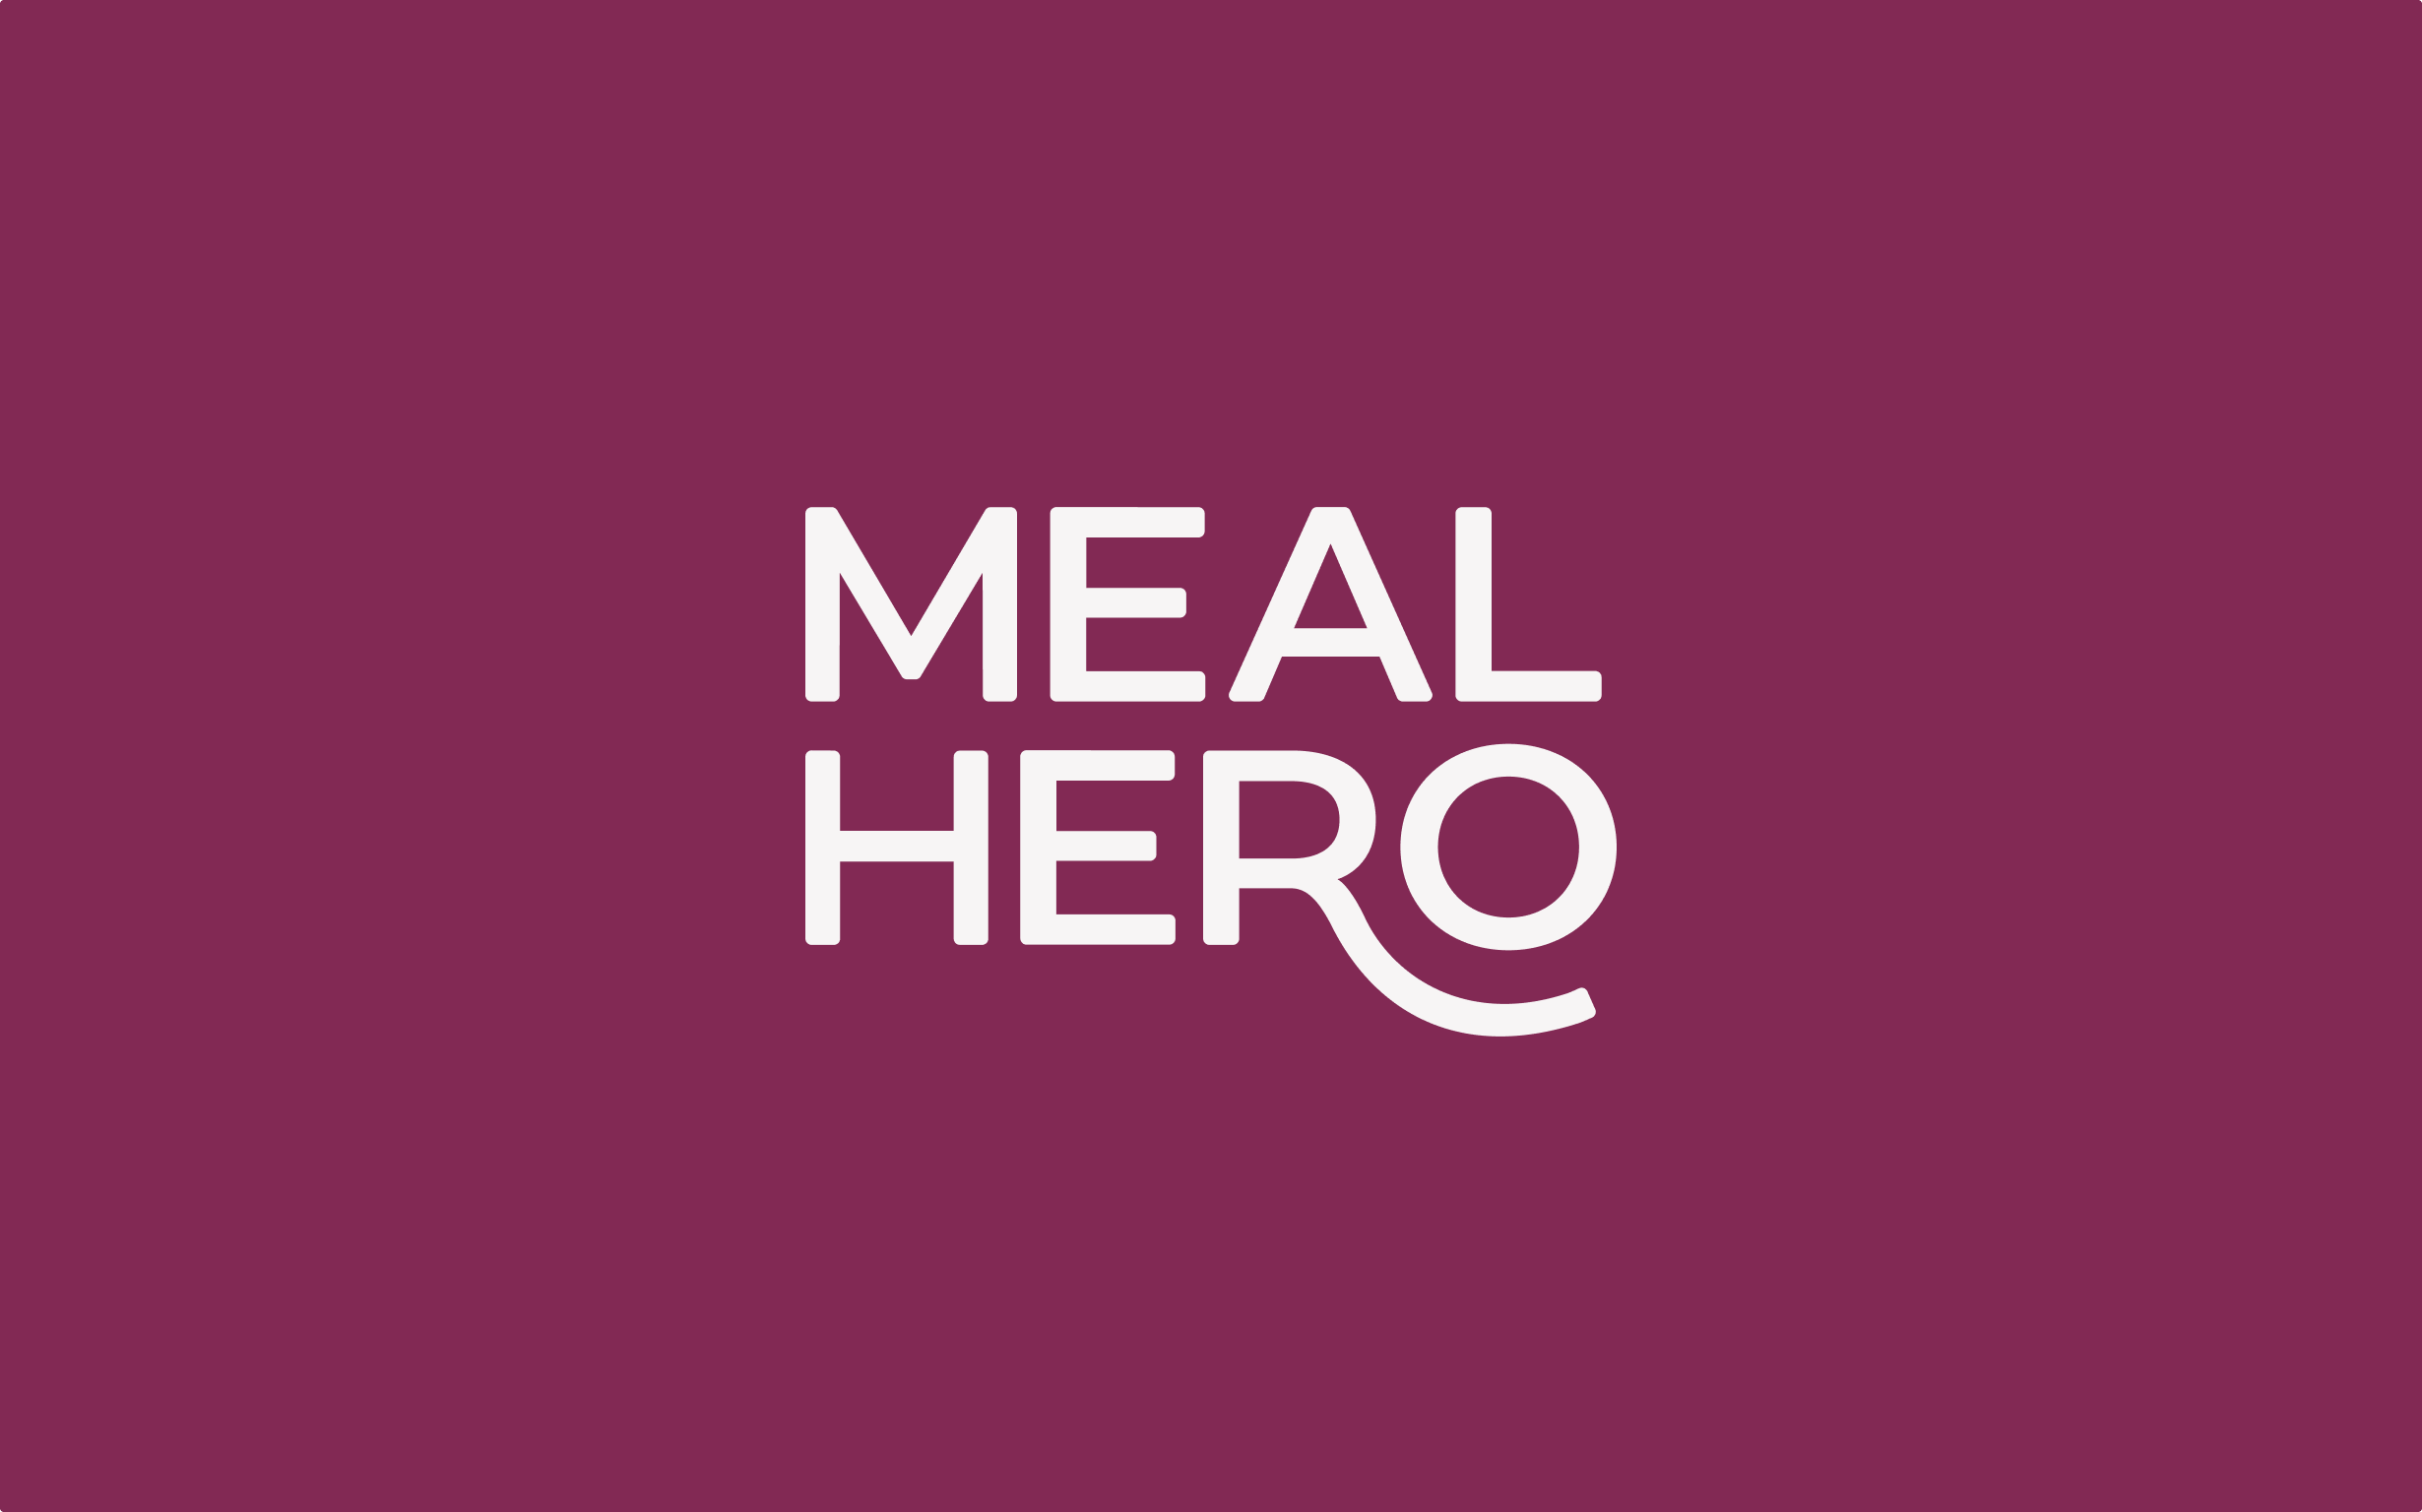 Meal Hero's logo features white text on a purple background, showing a playful yet modern brand different from other food apps.